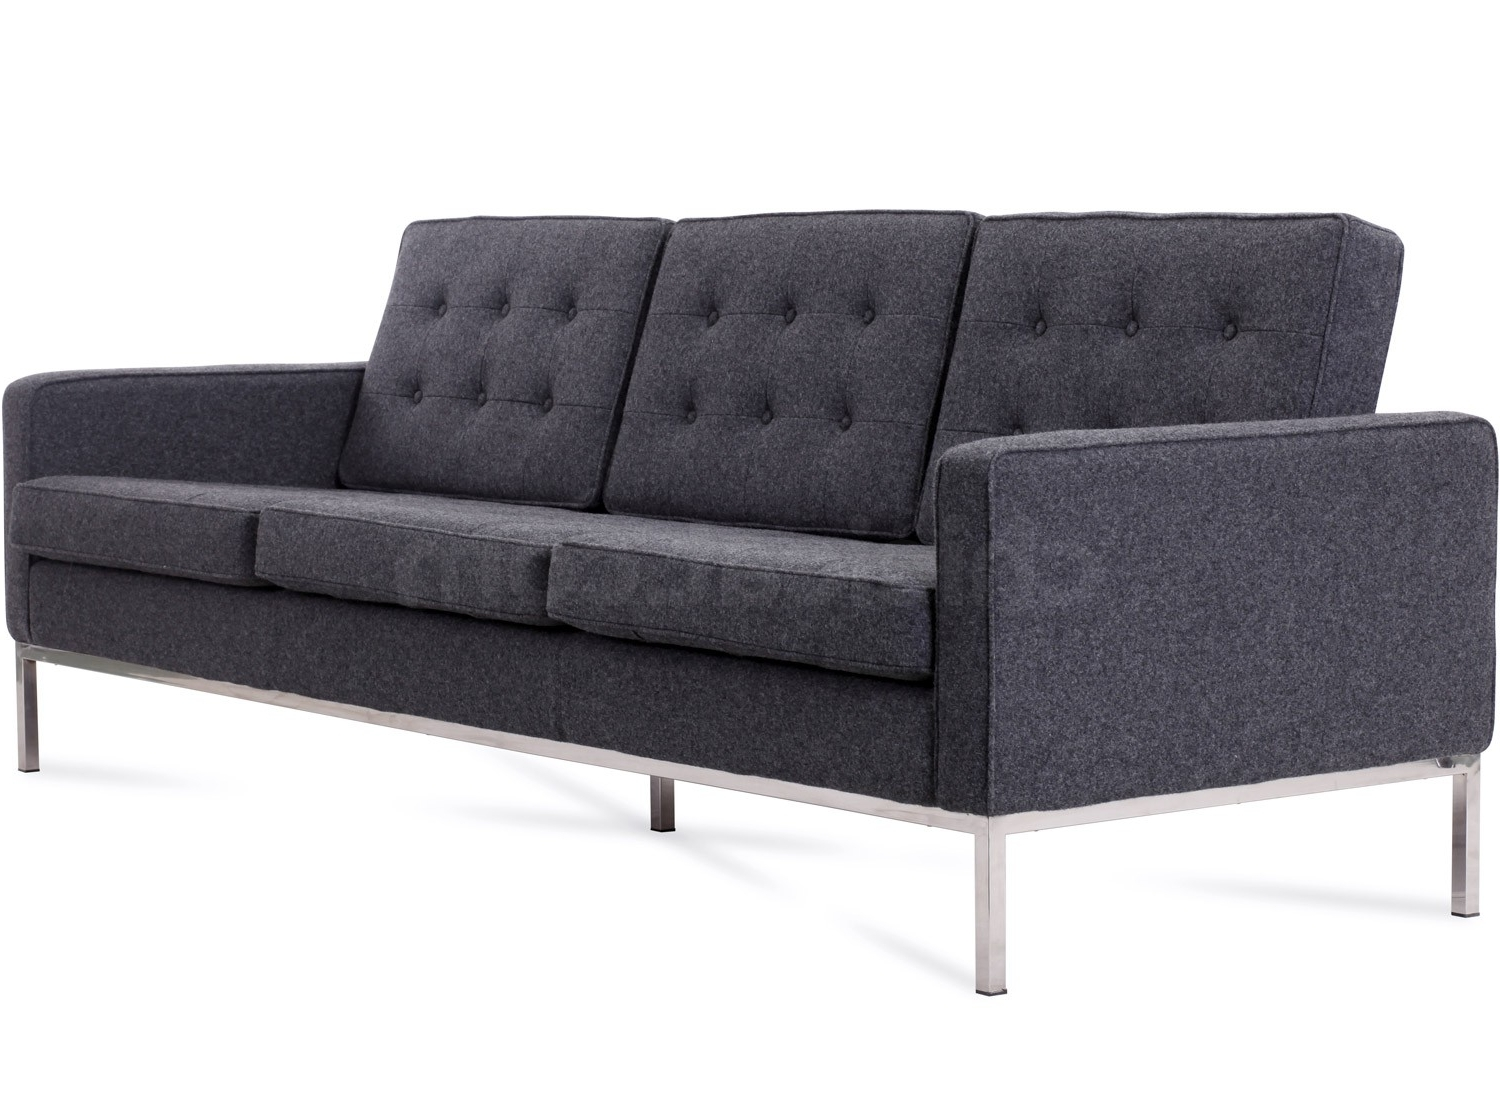 Recent Florence Knoll Sofa 3 Seater Wool (Platinum Replica) Pertaining To Florence Knoll Fabric Sofas (View 14 of 15)